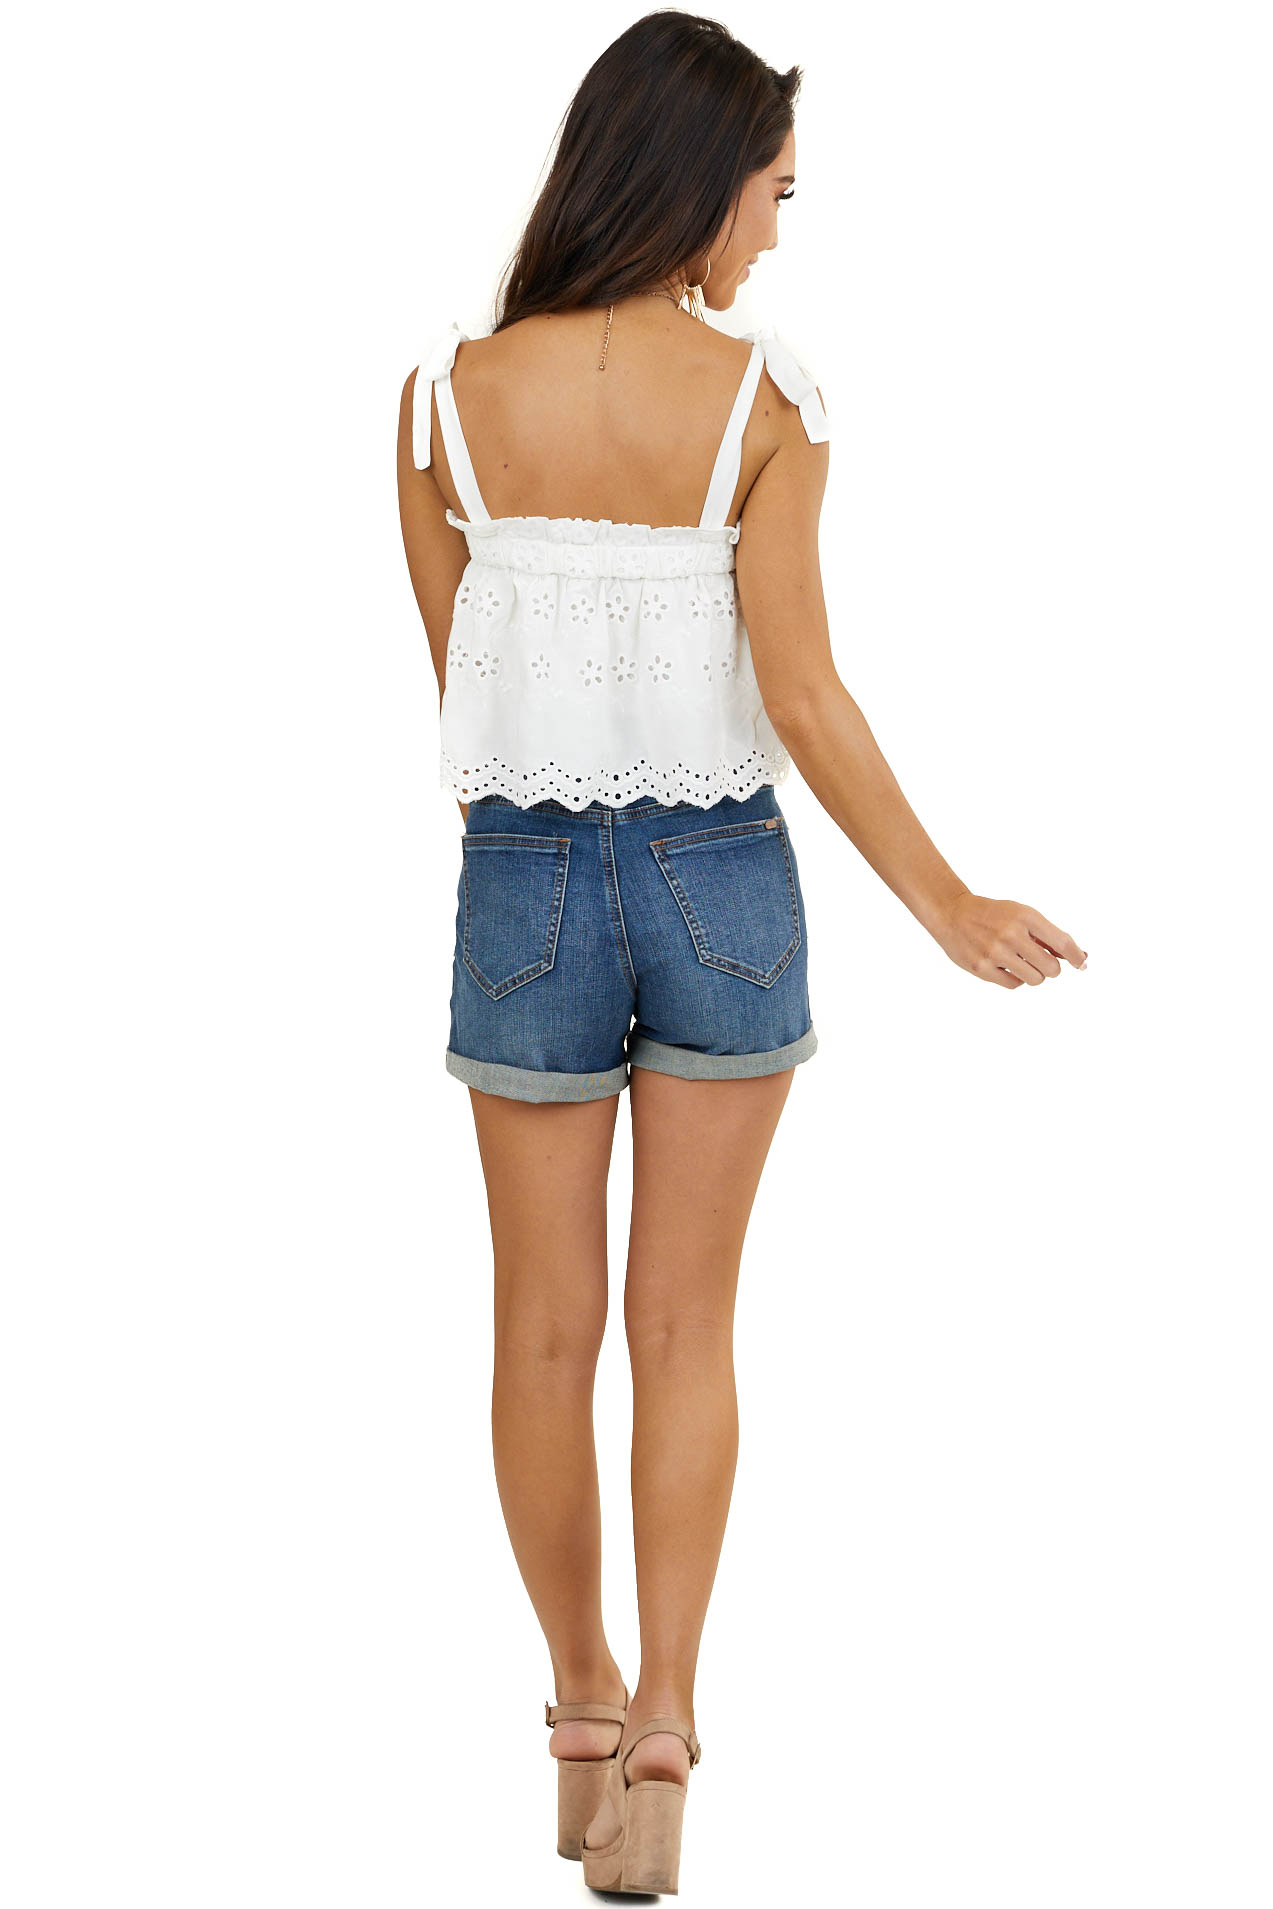 Off White Floral Eyelet Lace Sleeveless Top with Strap Ties